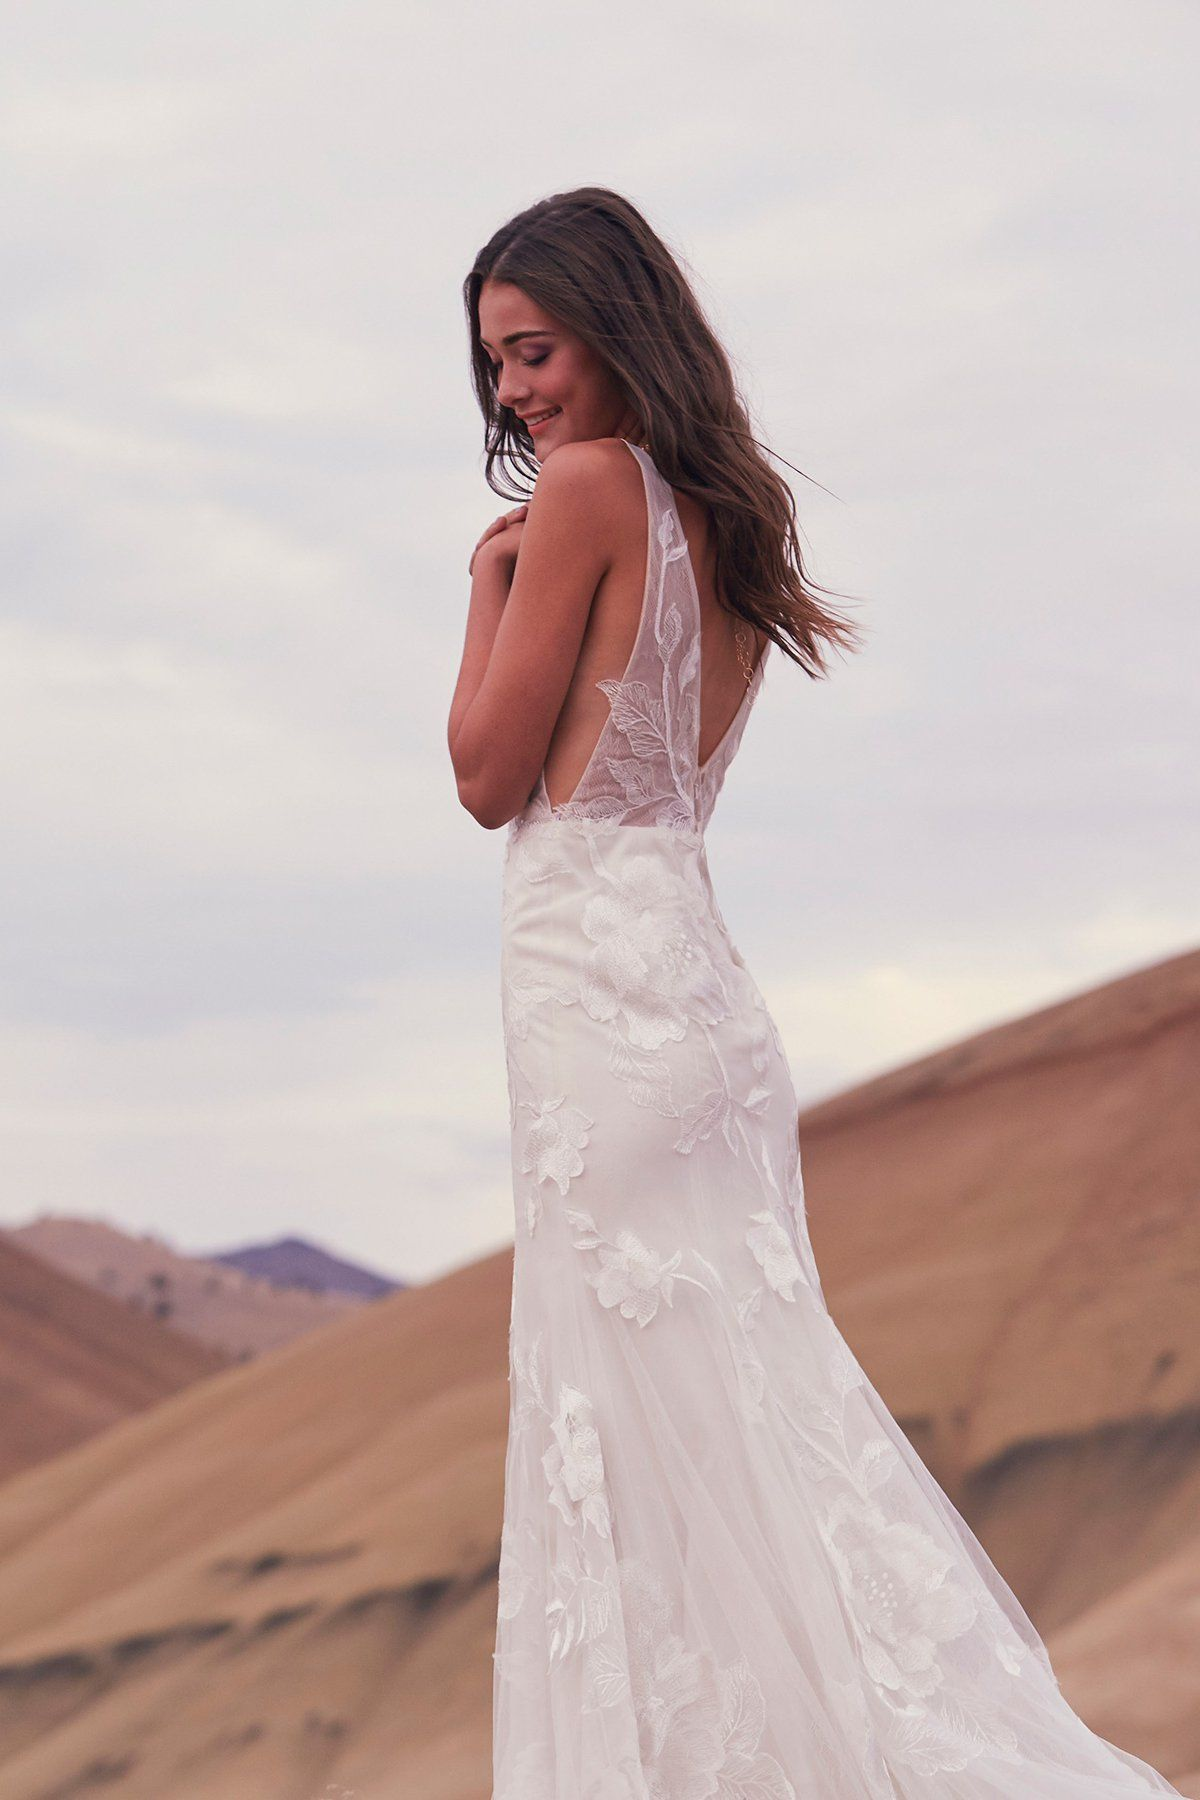 b52f8cff135 When you want an incredible gown you can wear (without it wearing you)